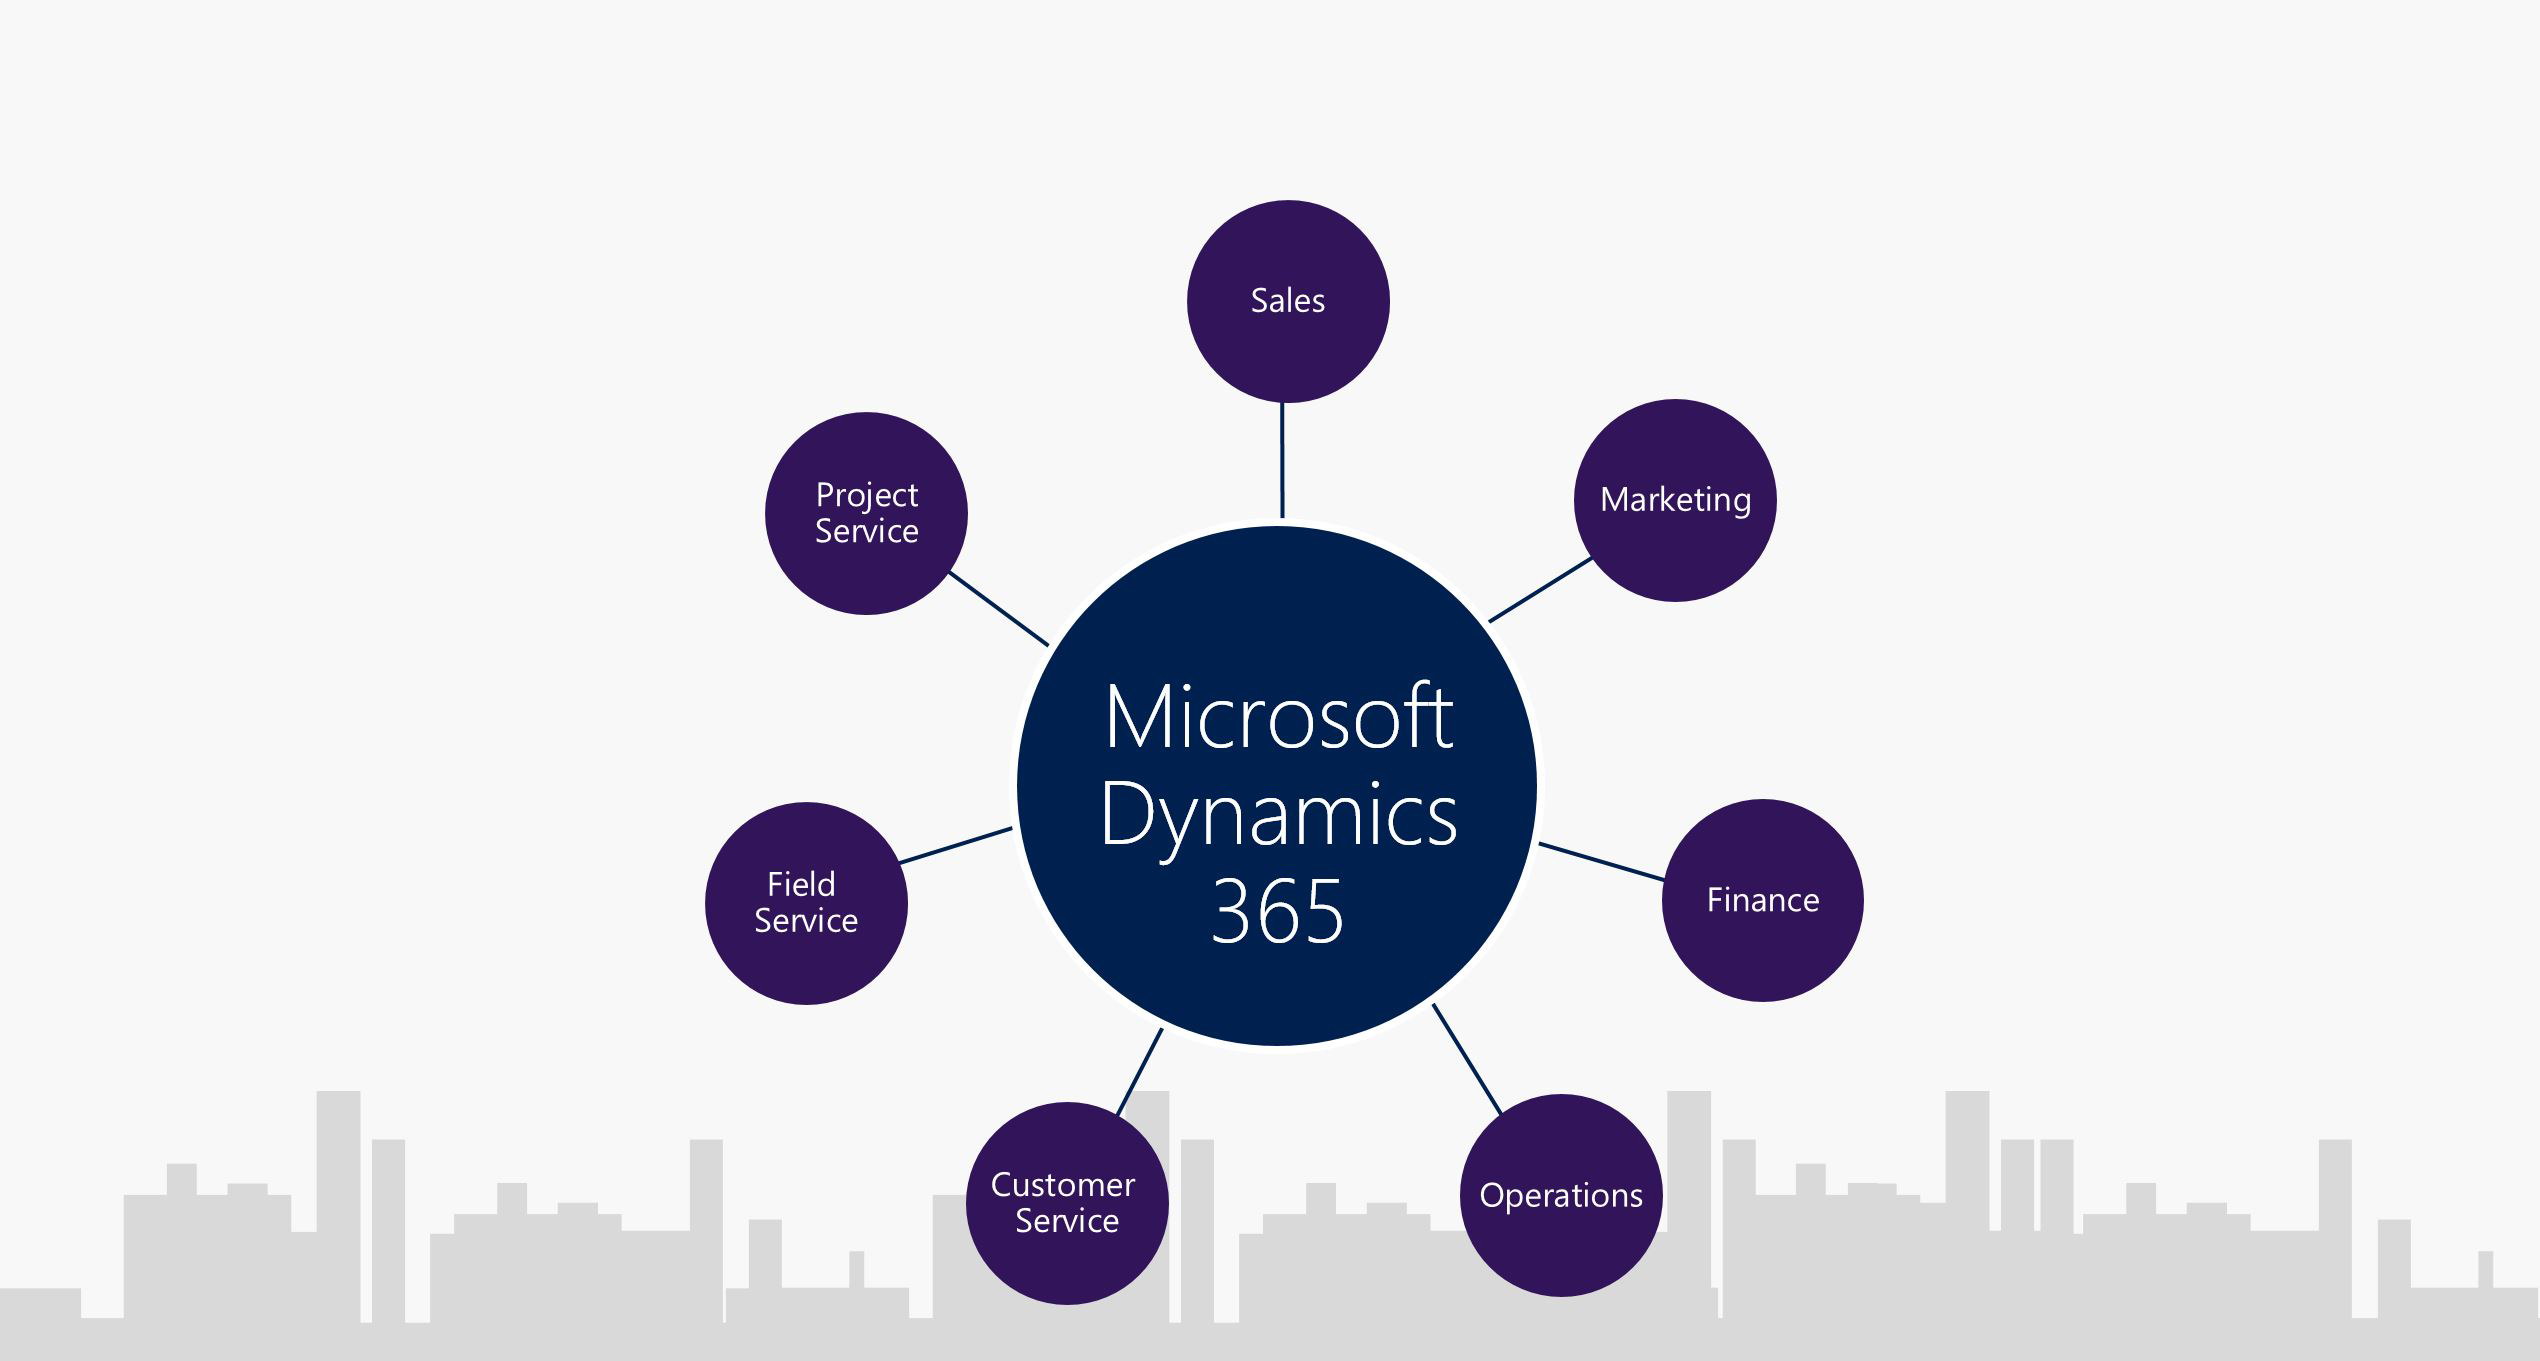 Applications Microsoft Dynamics 365